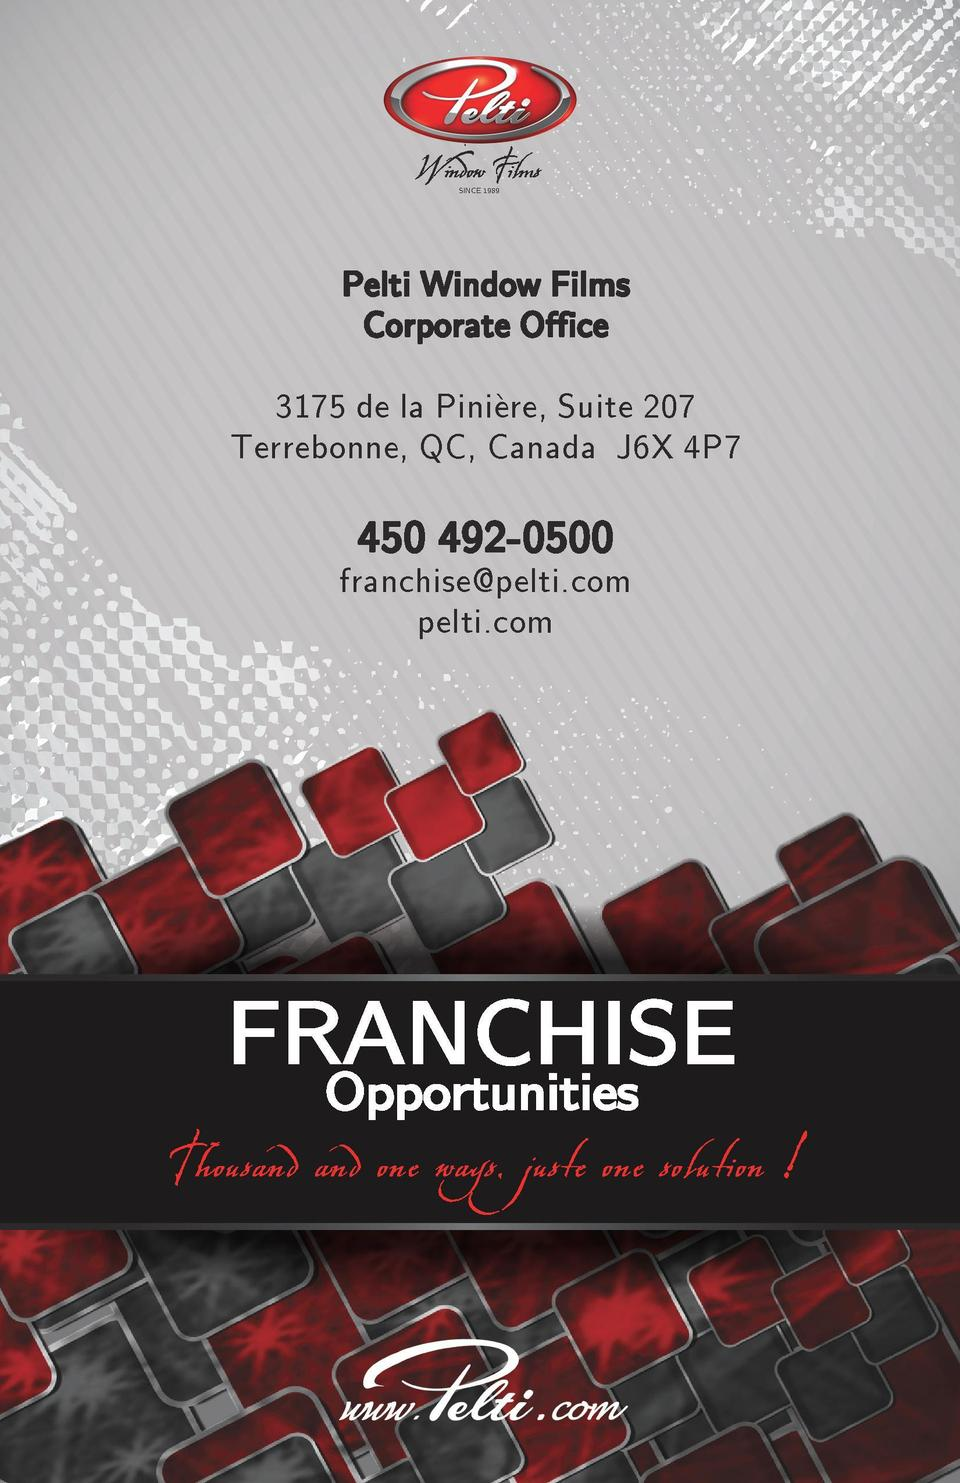 Pelti Franchise_mode Cahier_V3.pdf  2  15-09-16  14 56  SINCE 1989  SINCE 1989  Pelti Window Films Corporate Office 3175 d...